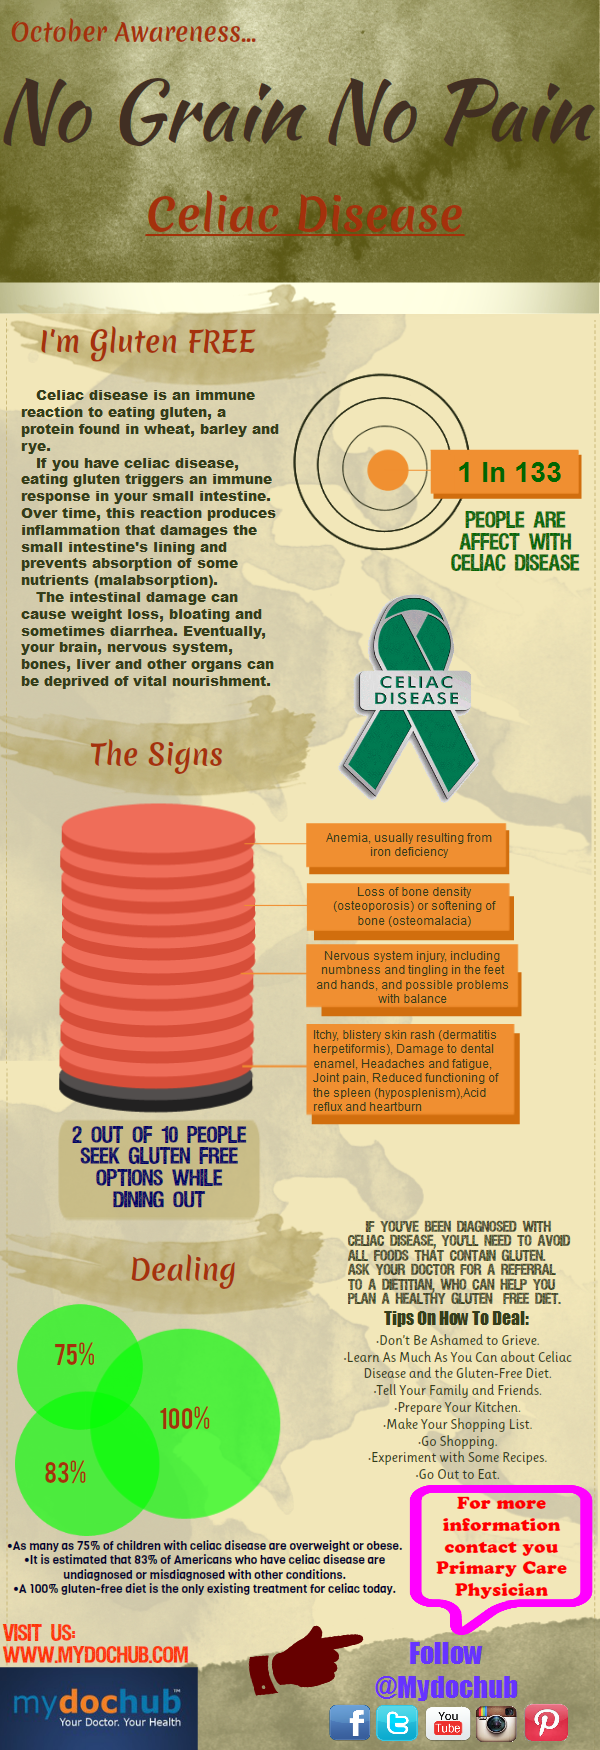 Celiac Awareness Infographic